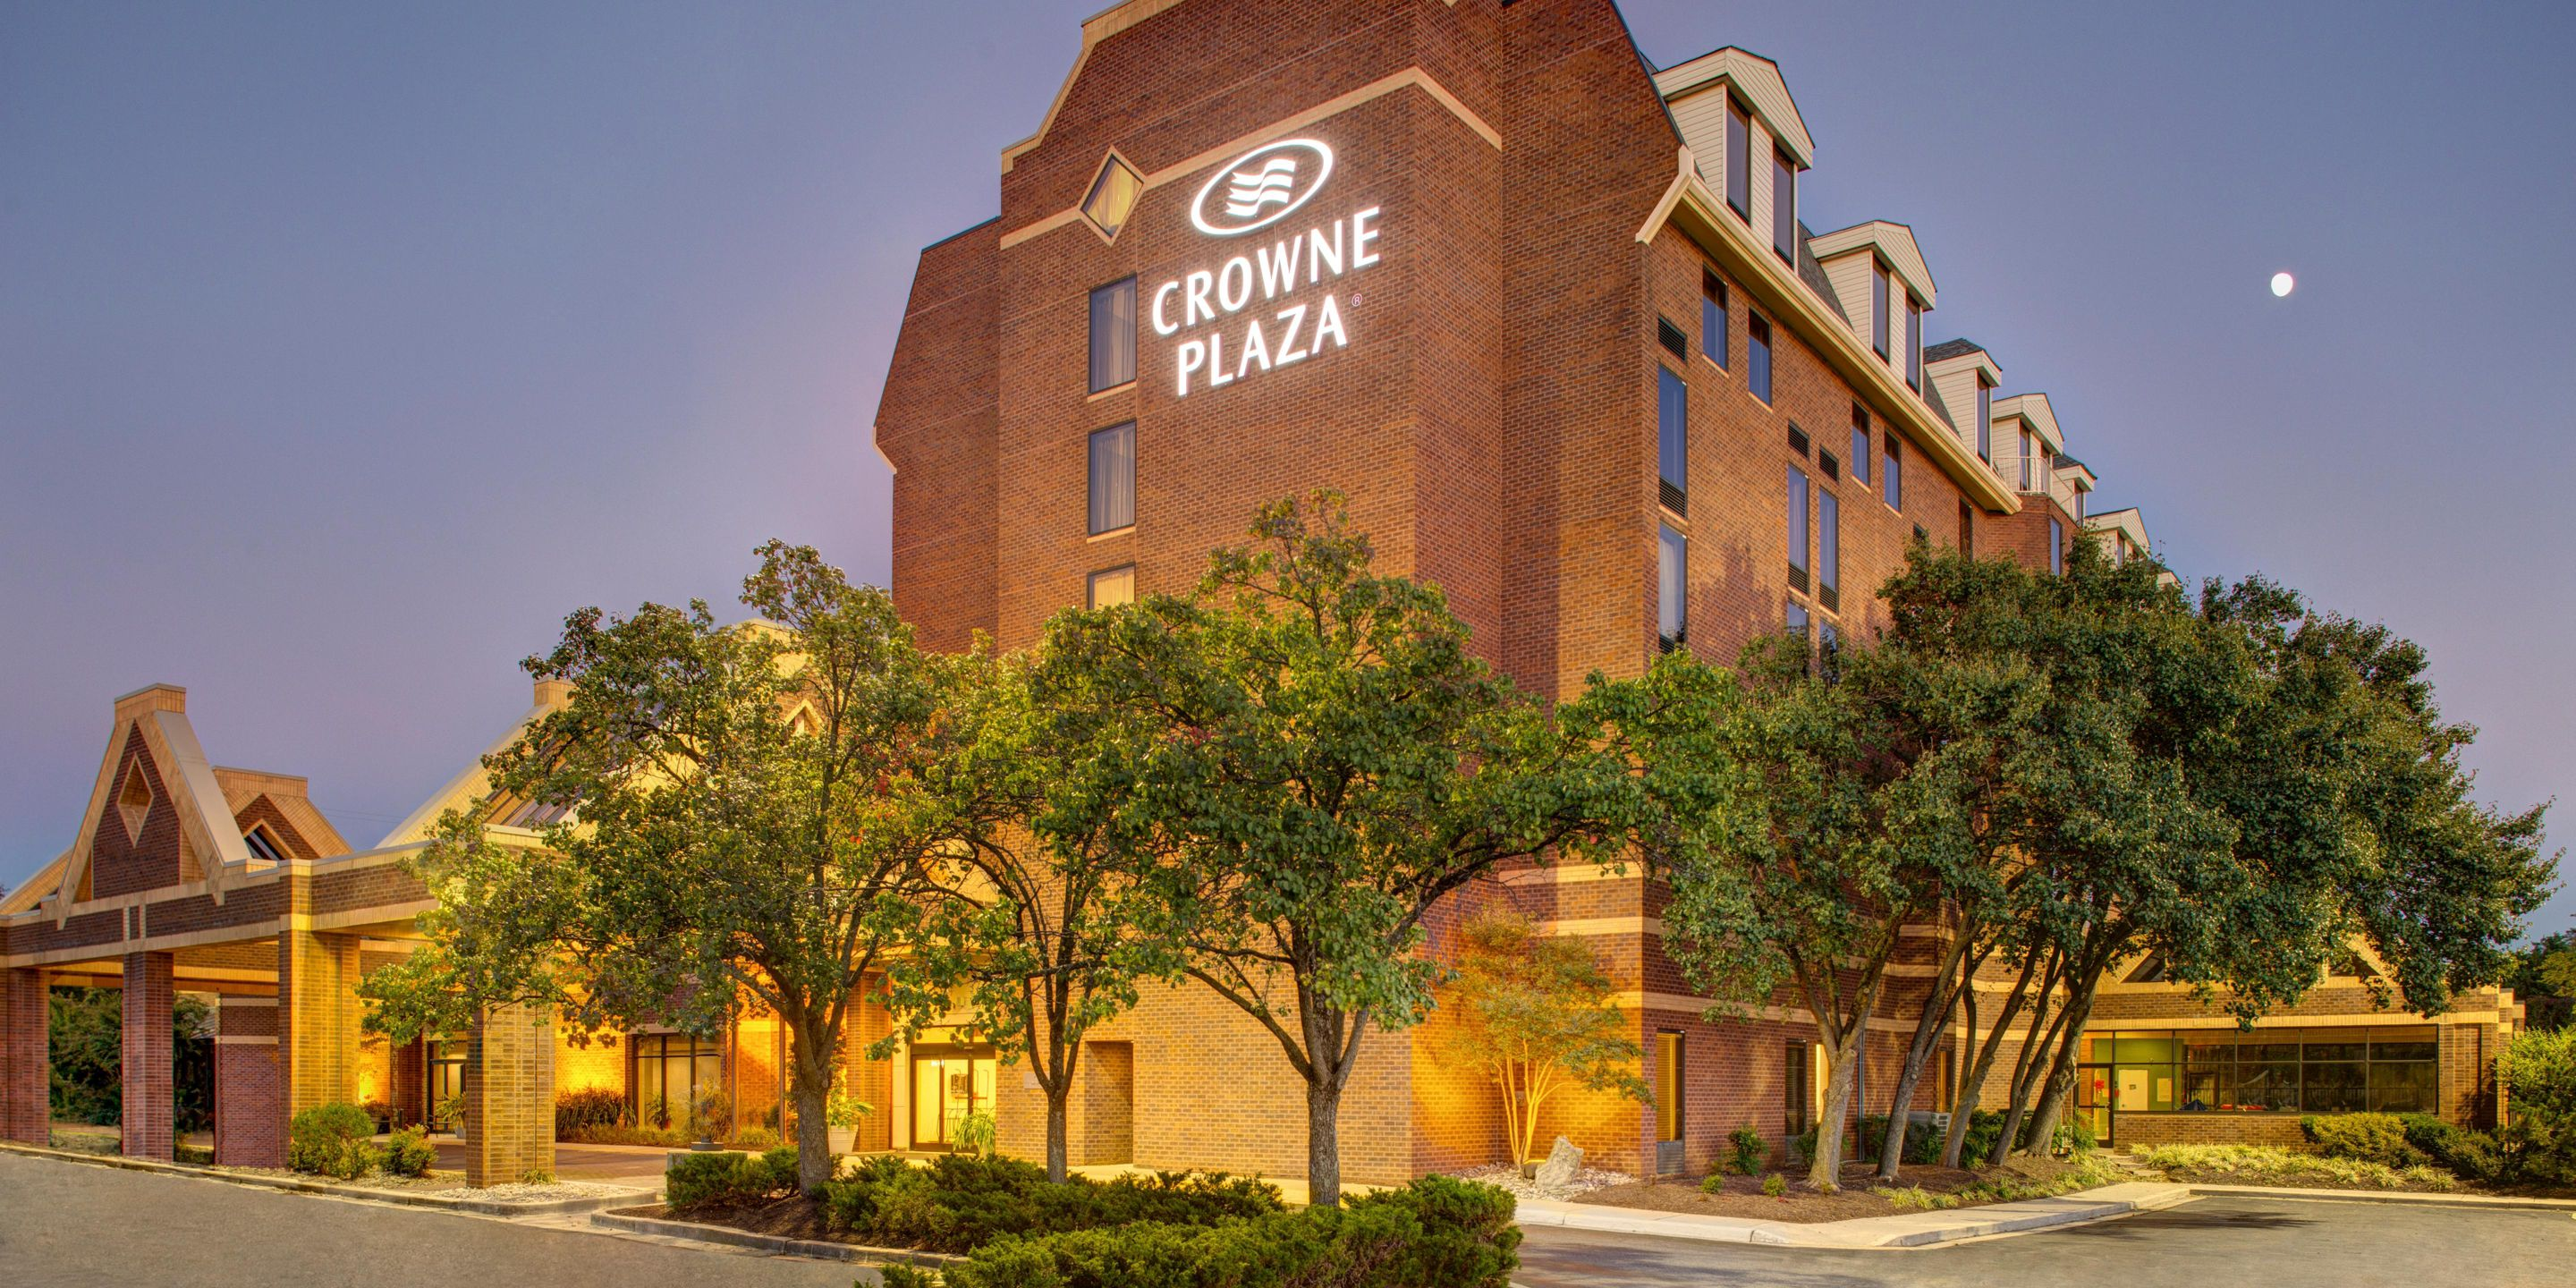 Crowne Plaza Hotel Promotes Well-Being in Annapolis